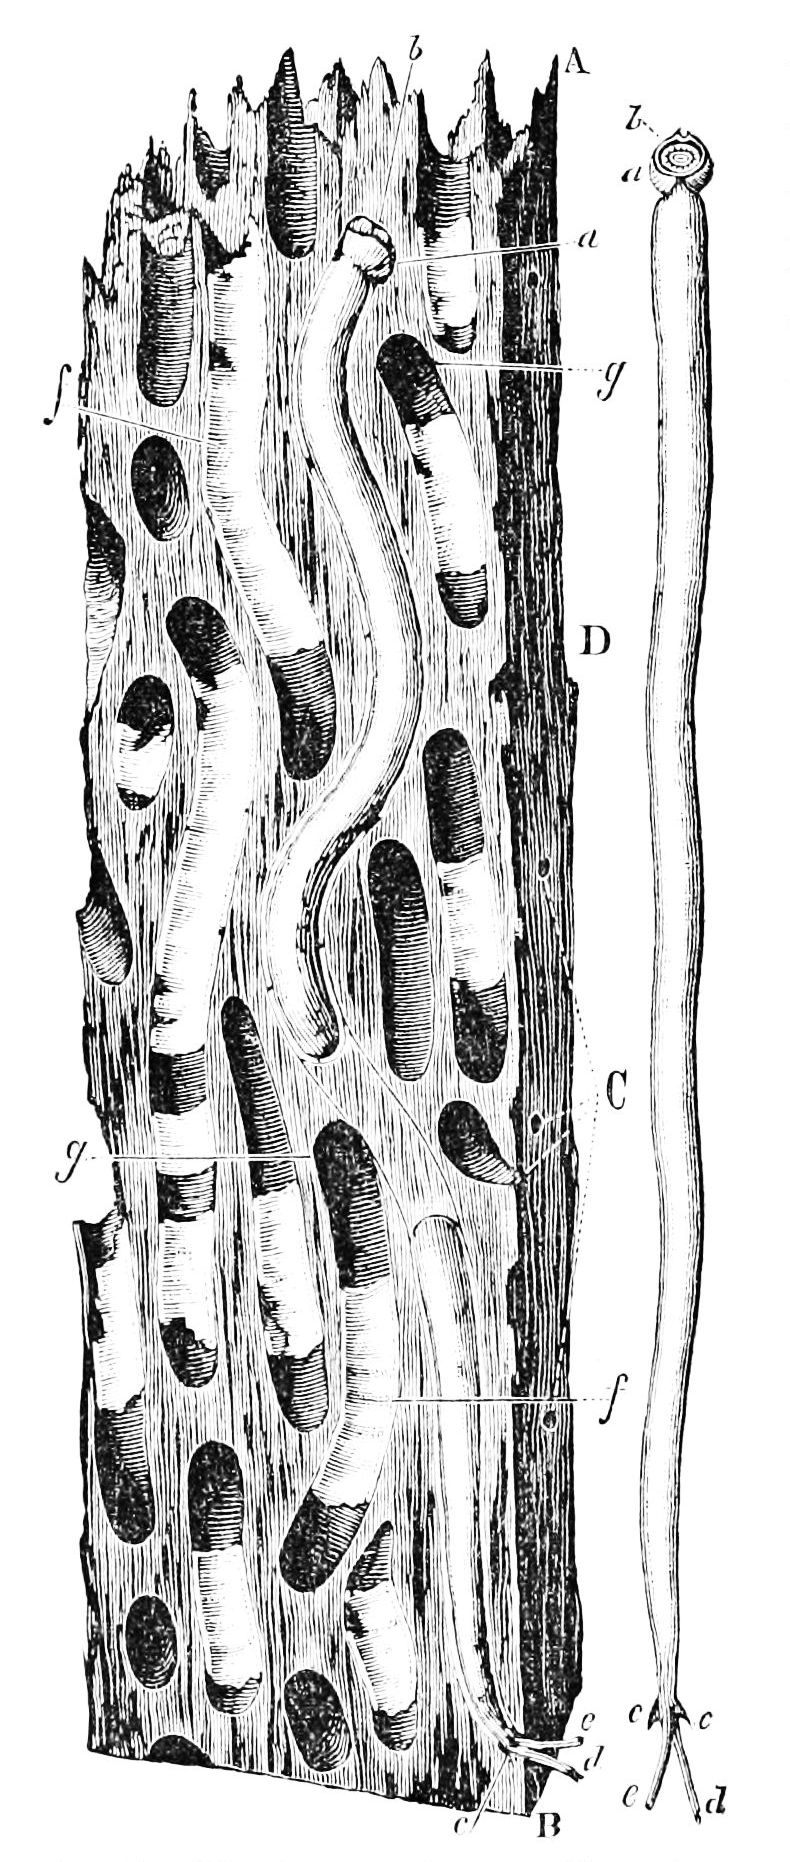 PSM V13 D564 Wood exposed to teredo depredation.jpg